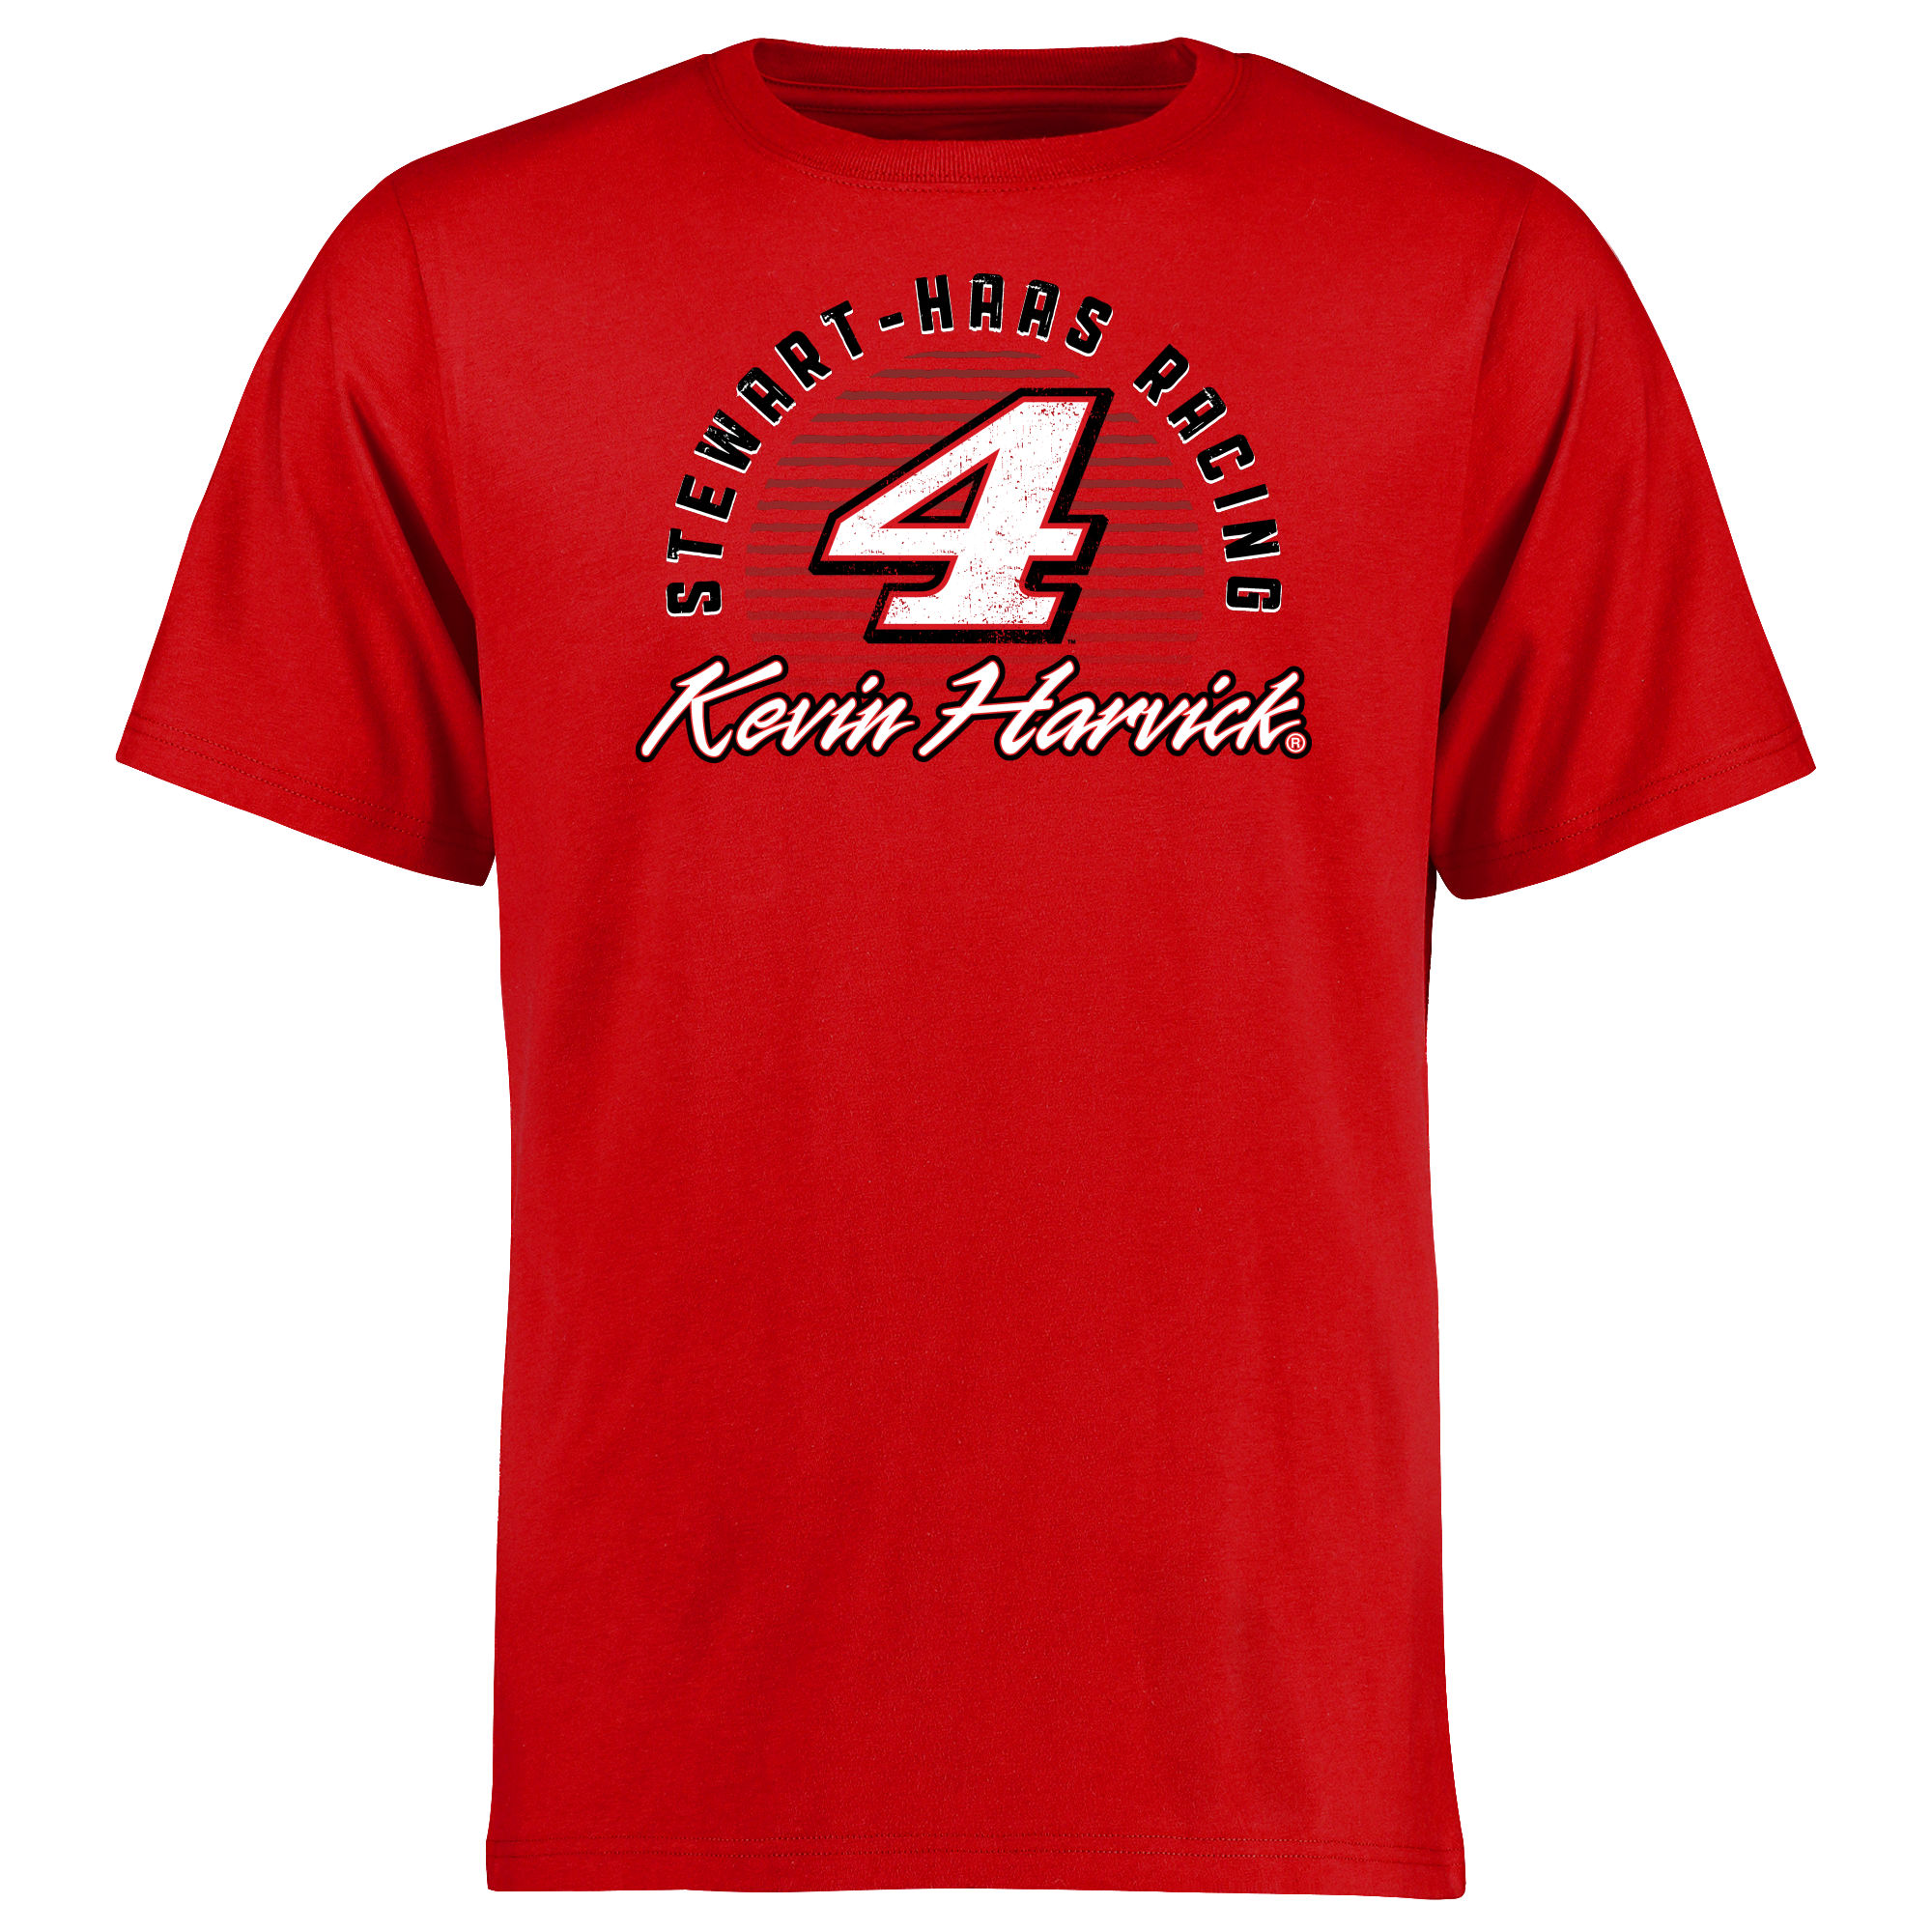 Kevin Harvick Race Day T-Shirt - Red